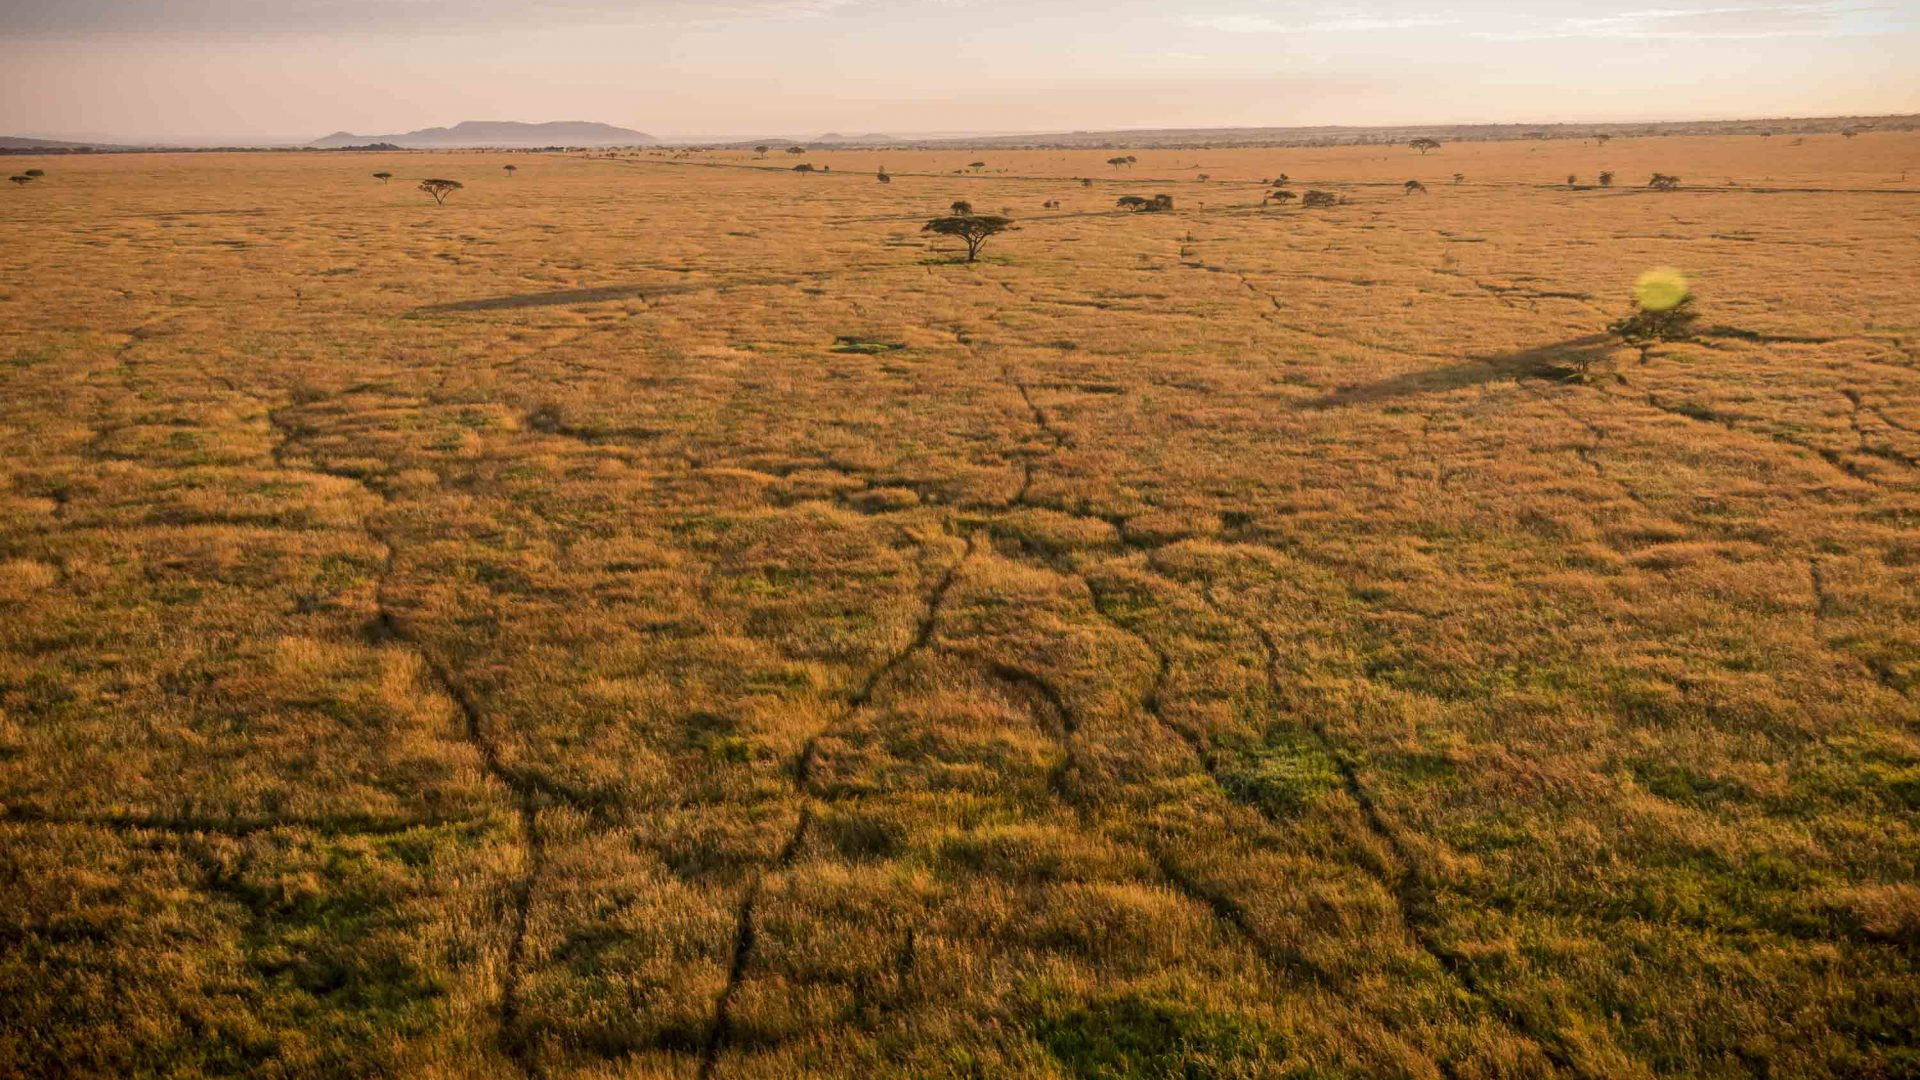 The vast plains of the Serengeti, Tanzania.